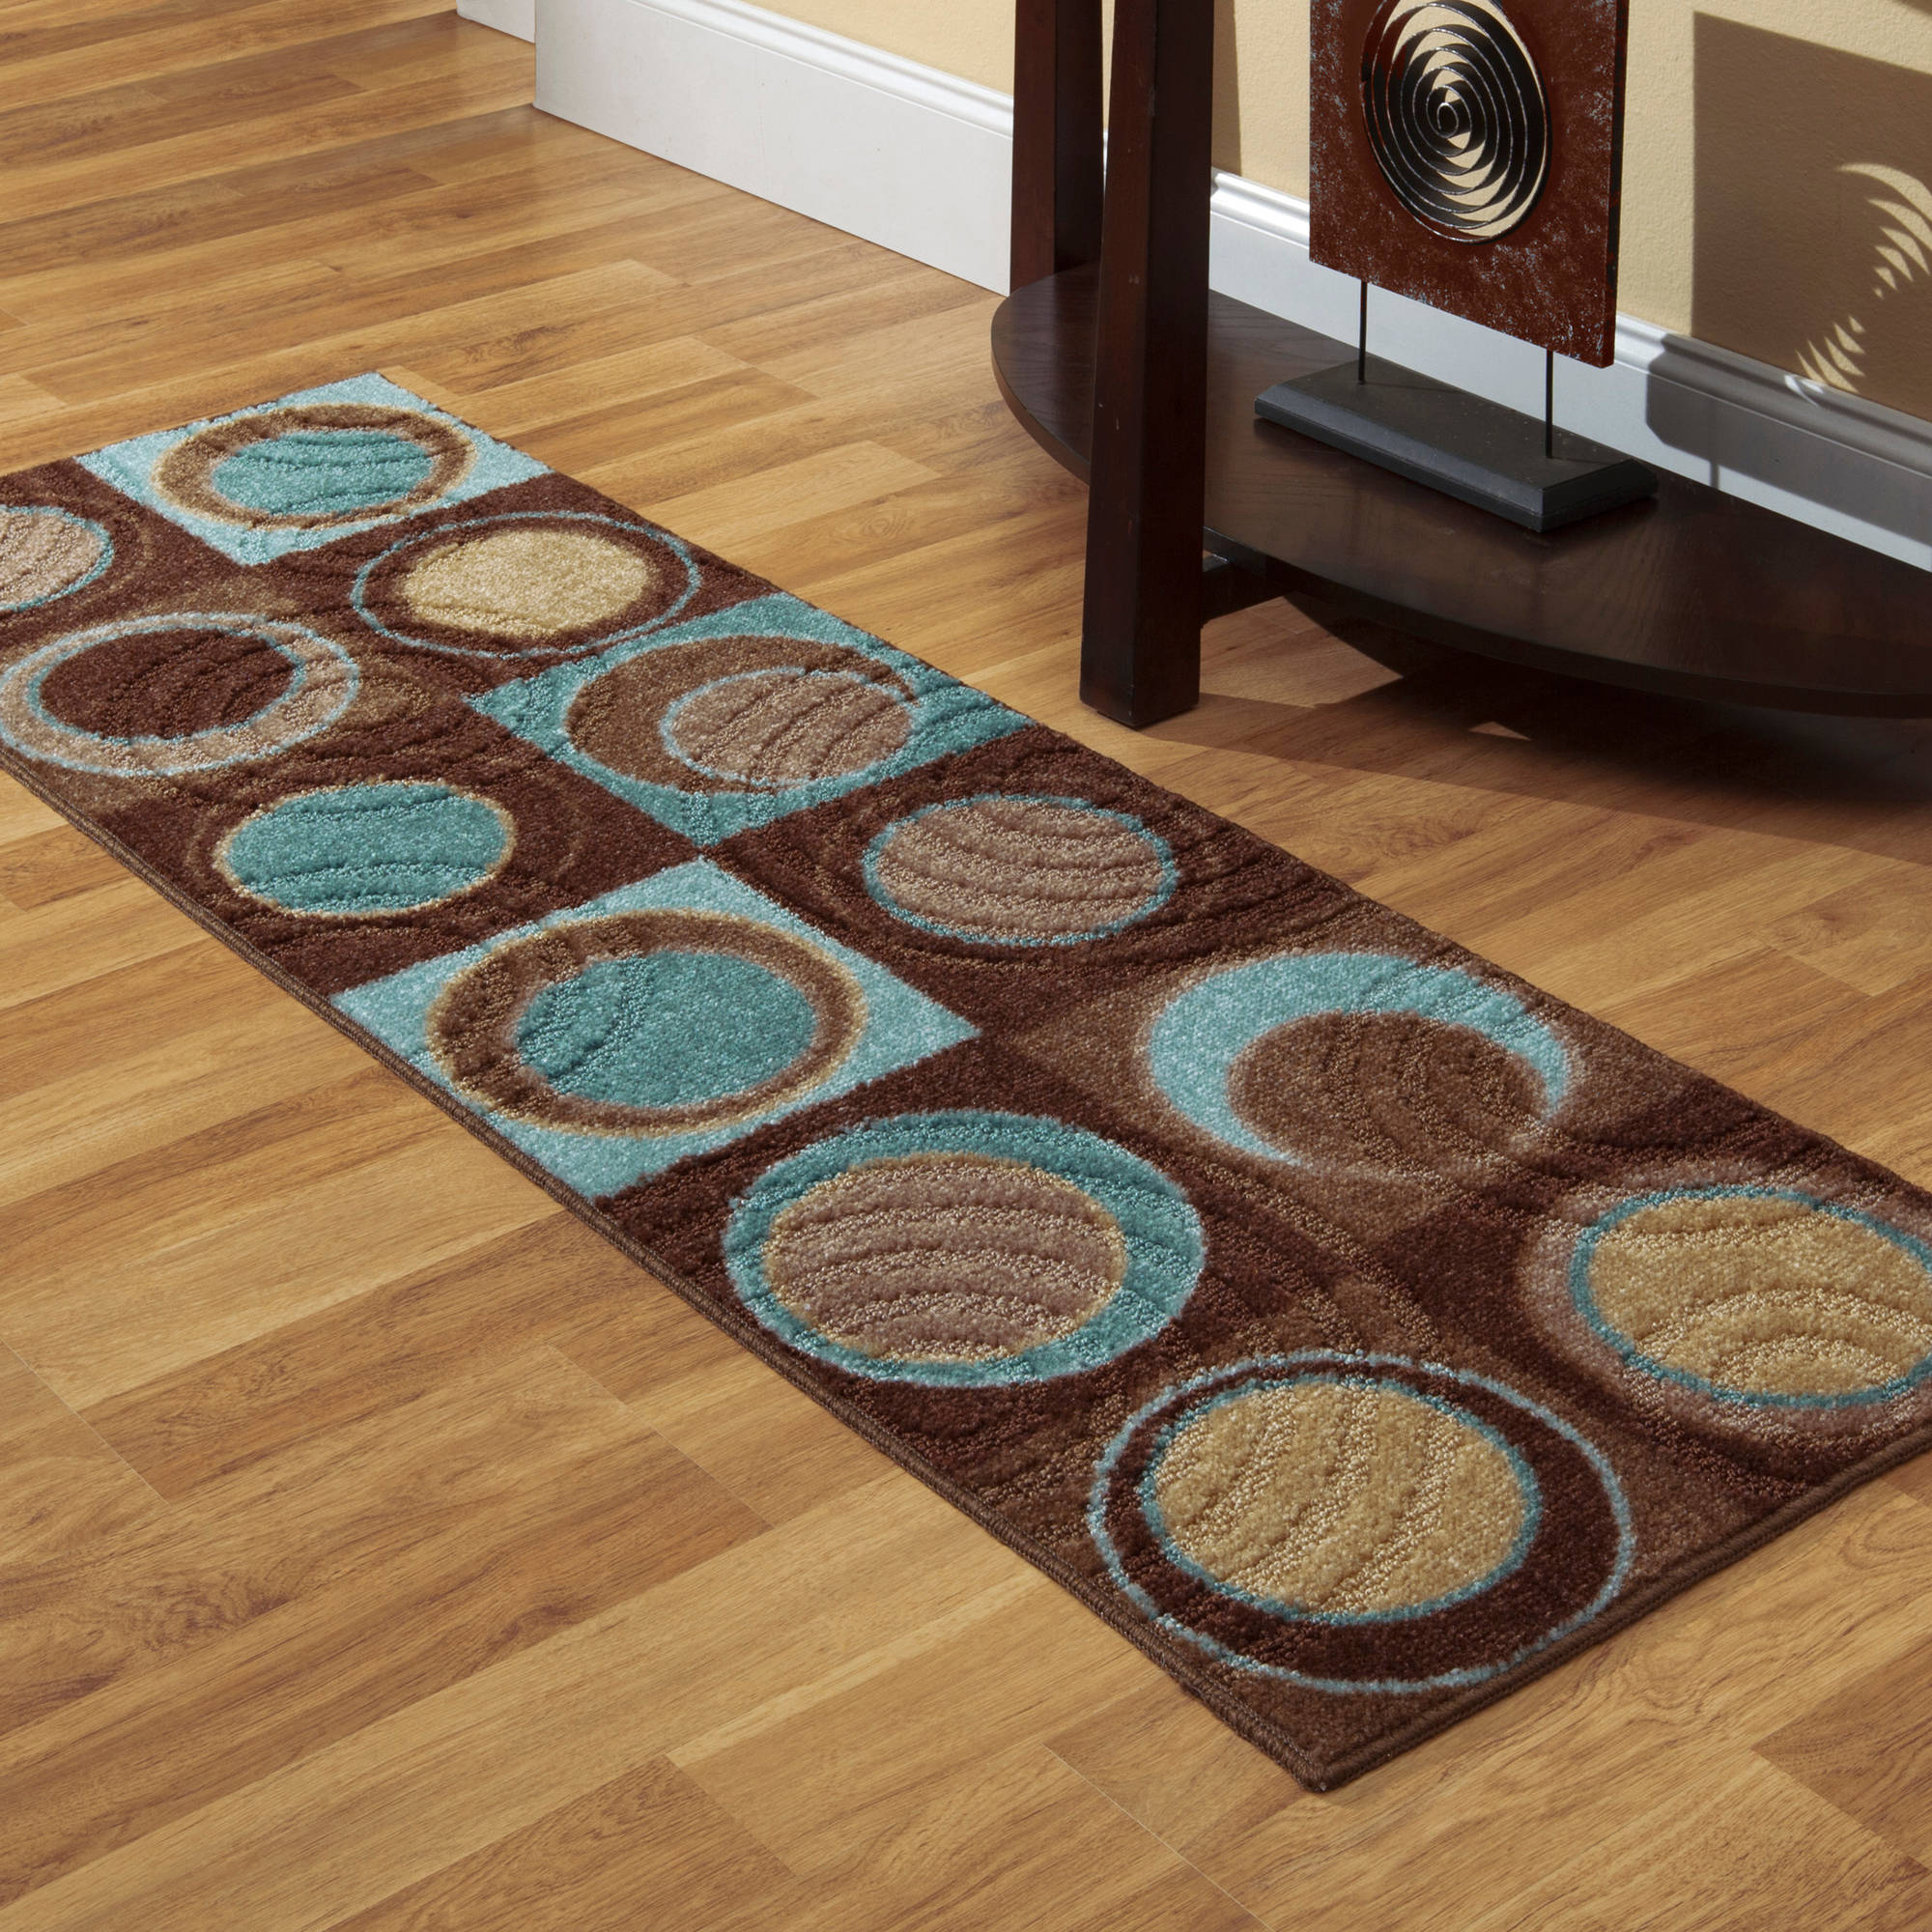 ... Better Homes And Gardens Circle Block Runner Rug Available In Walmart  001751703 ...